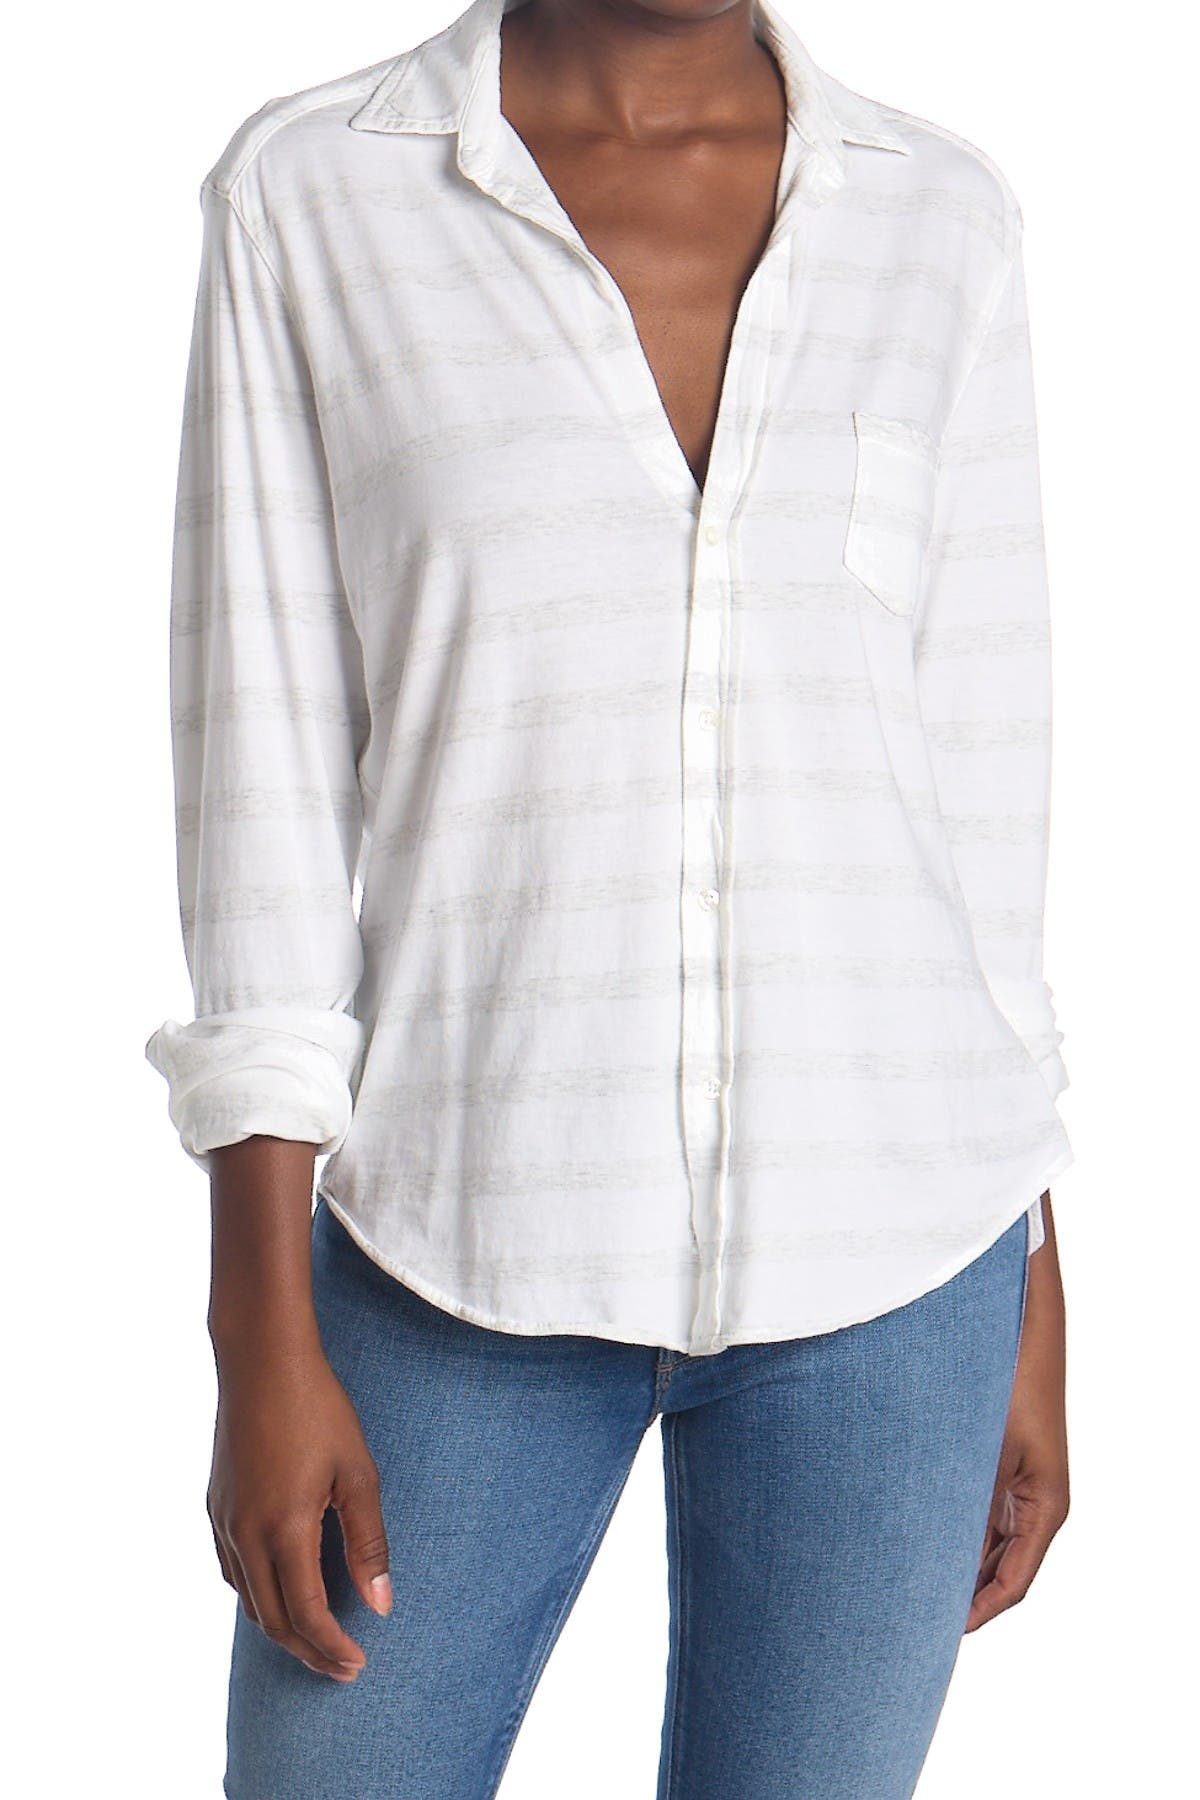 Image of FRANK & EILEEN Striped Relaxed Fit Tunic Shirt